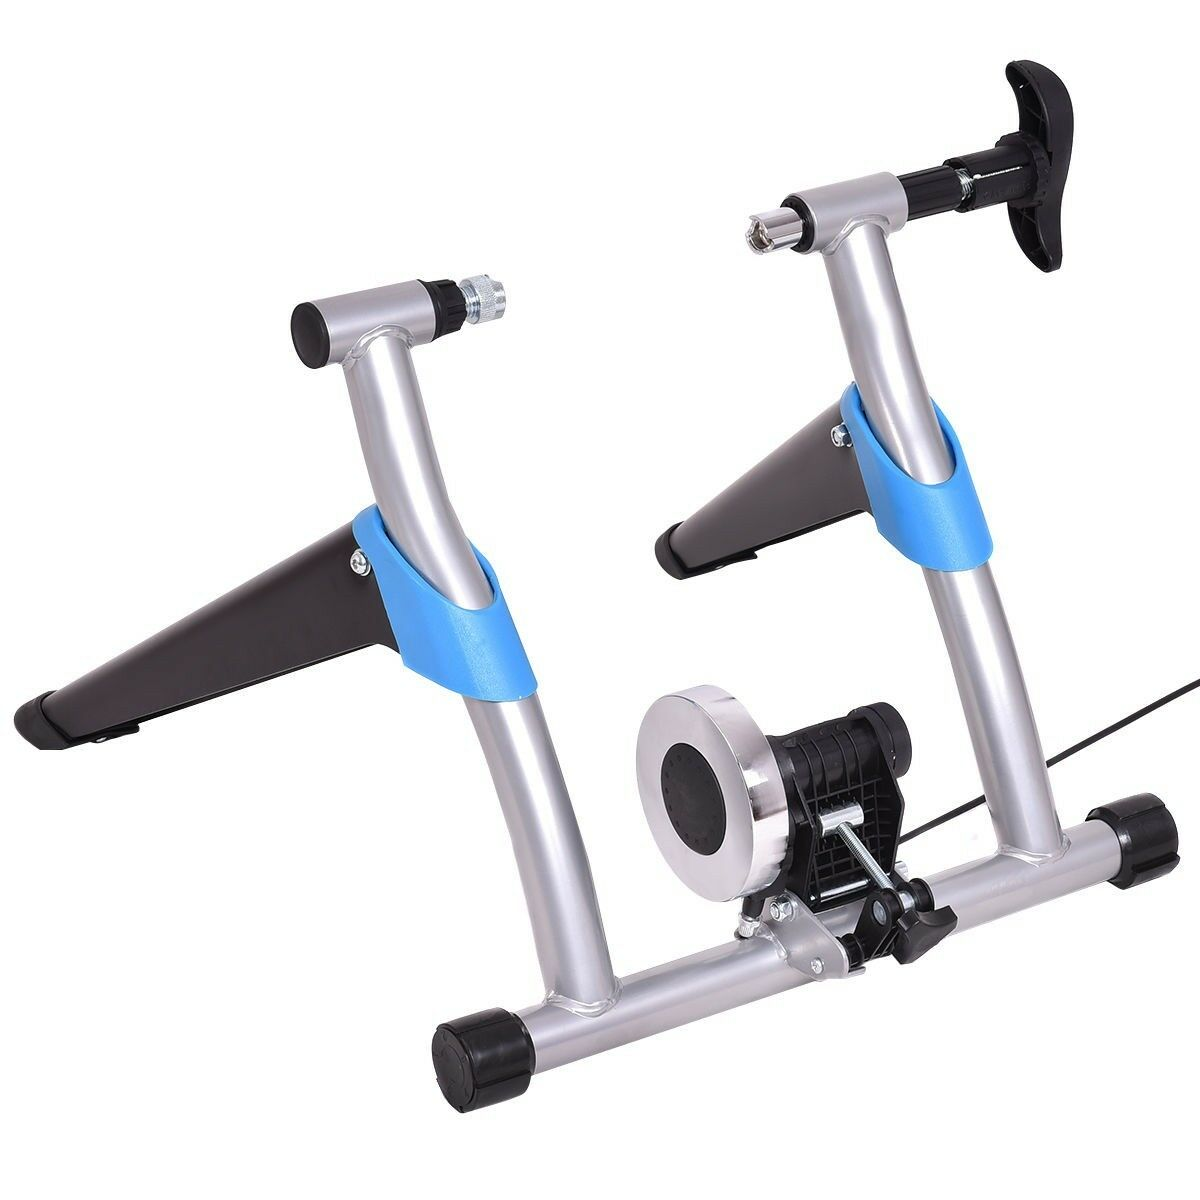 8Level magnetic resistance Indoor  Bike Trainer Stand Stationary Bicycle Exercise  we offer various famous brand